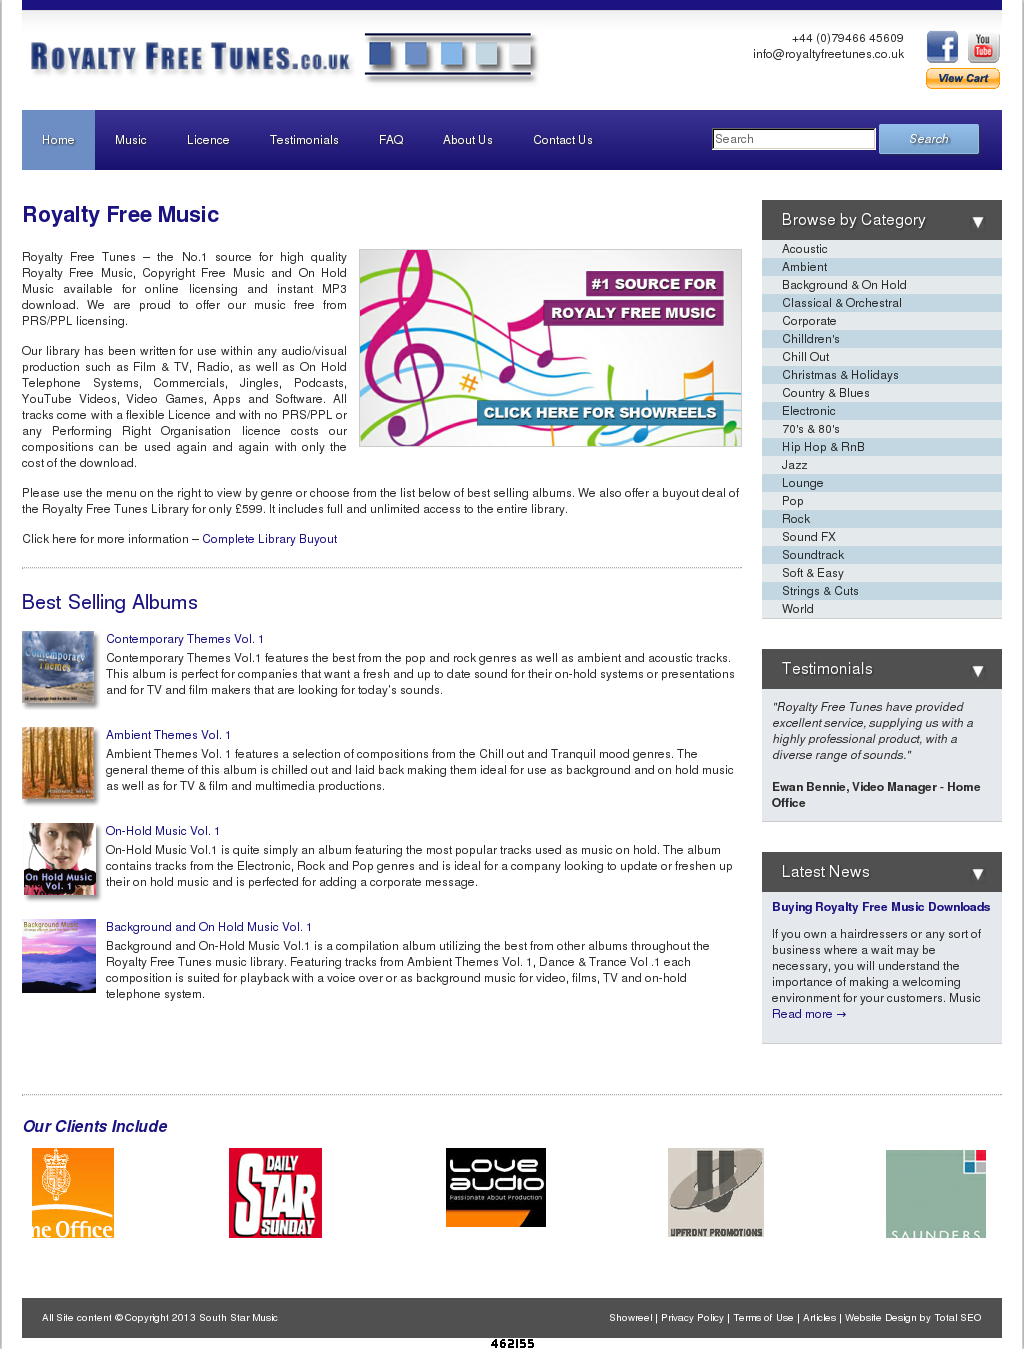 Royalty Free Tunes Competitors, Revenue and Employees